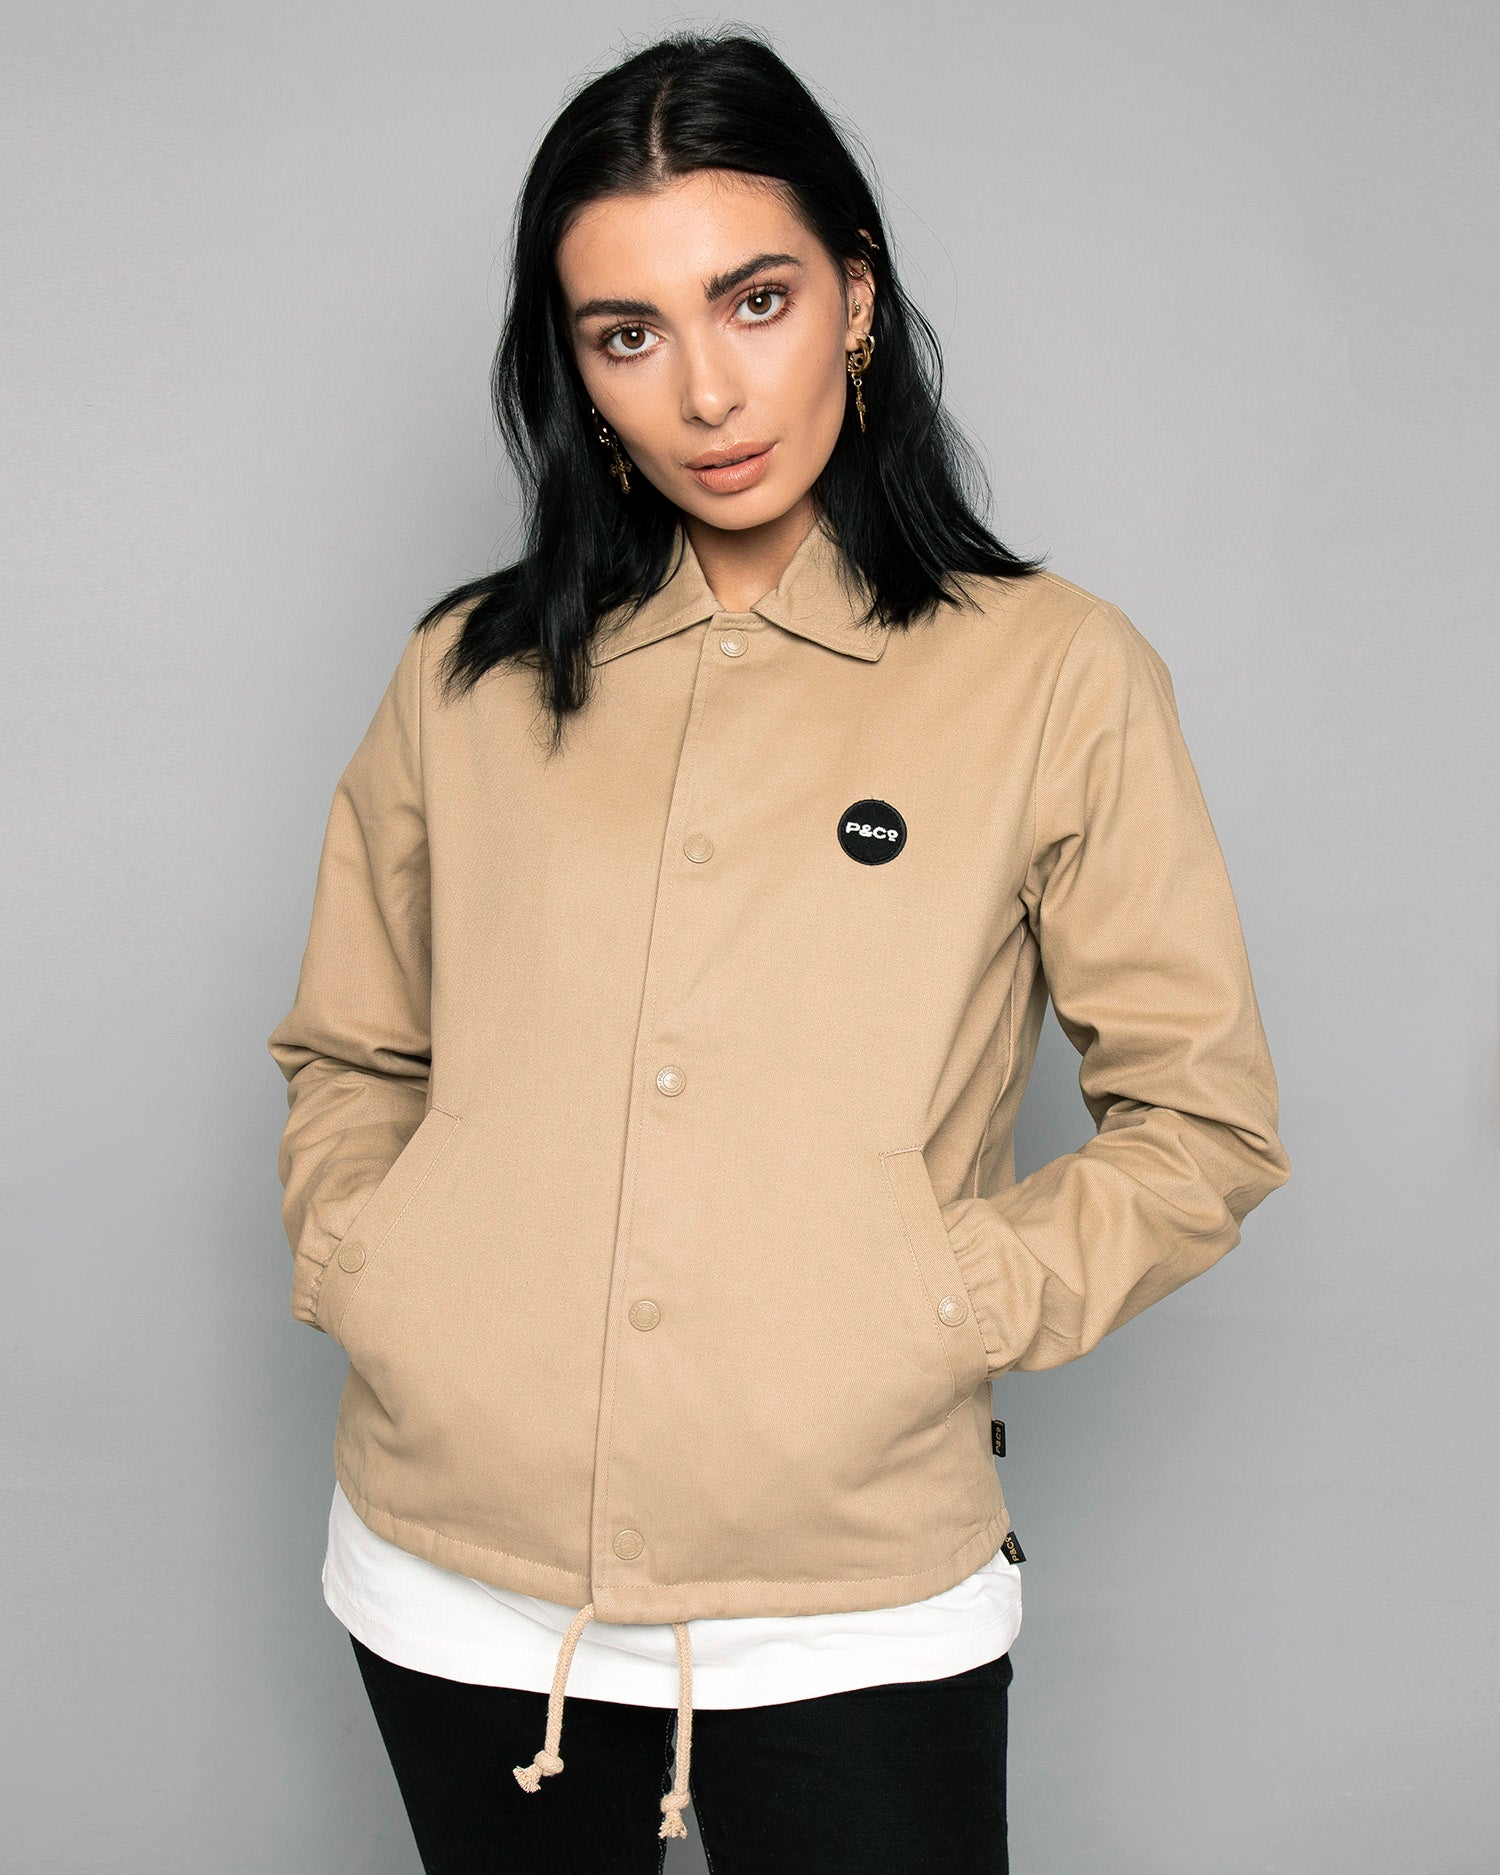 P&Co Logo Stone Coach jacket For women